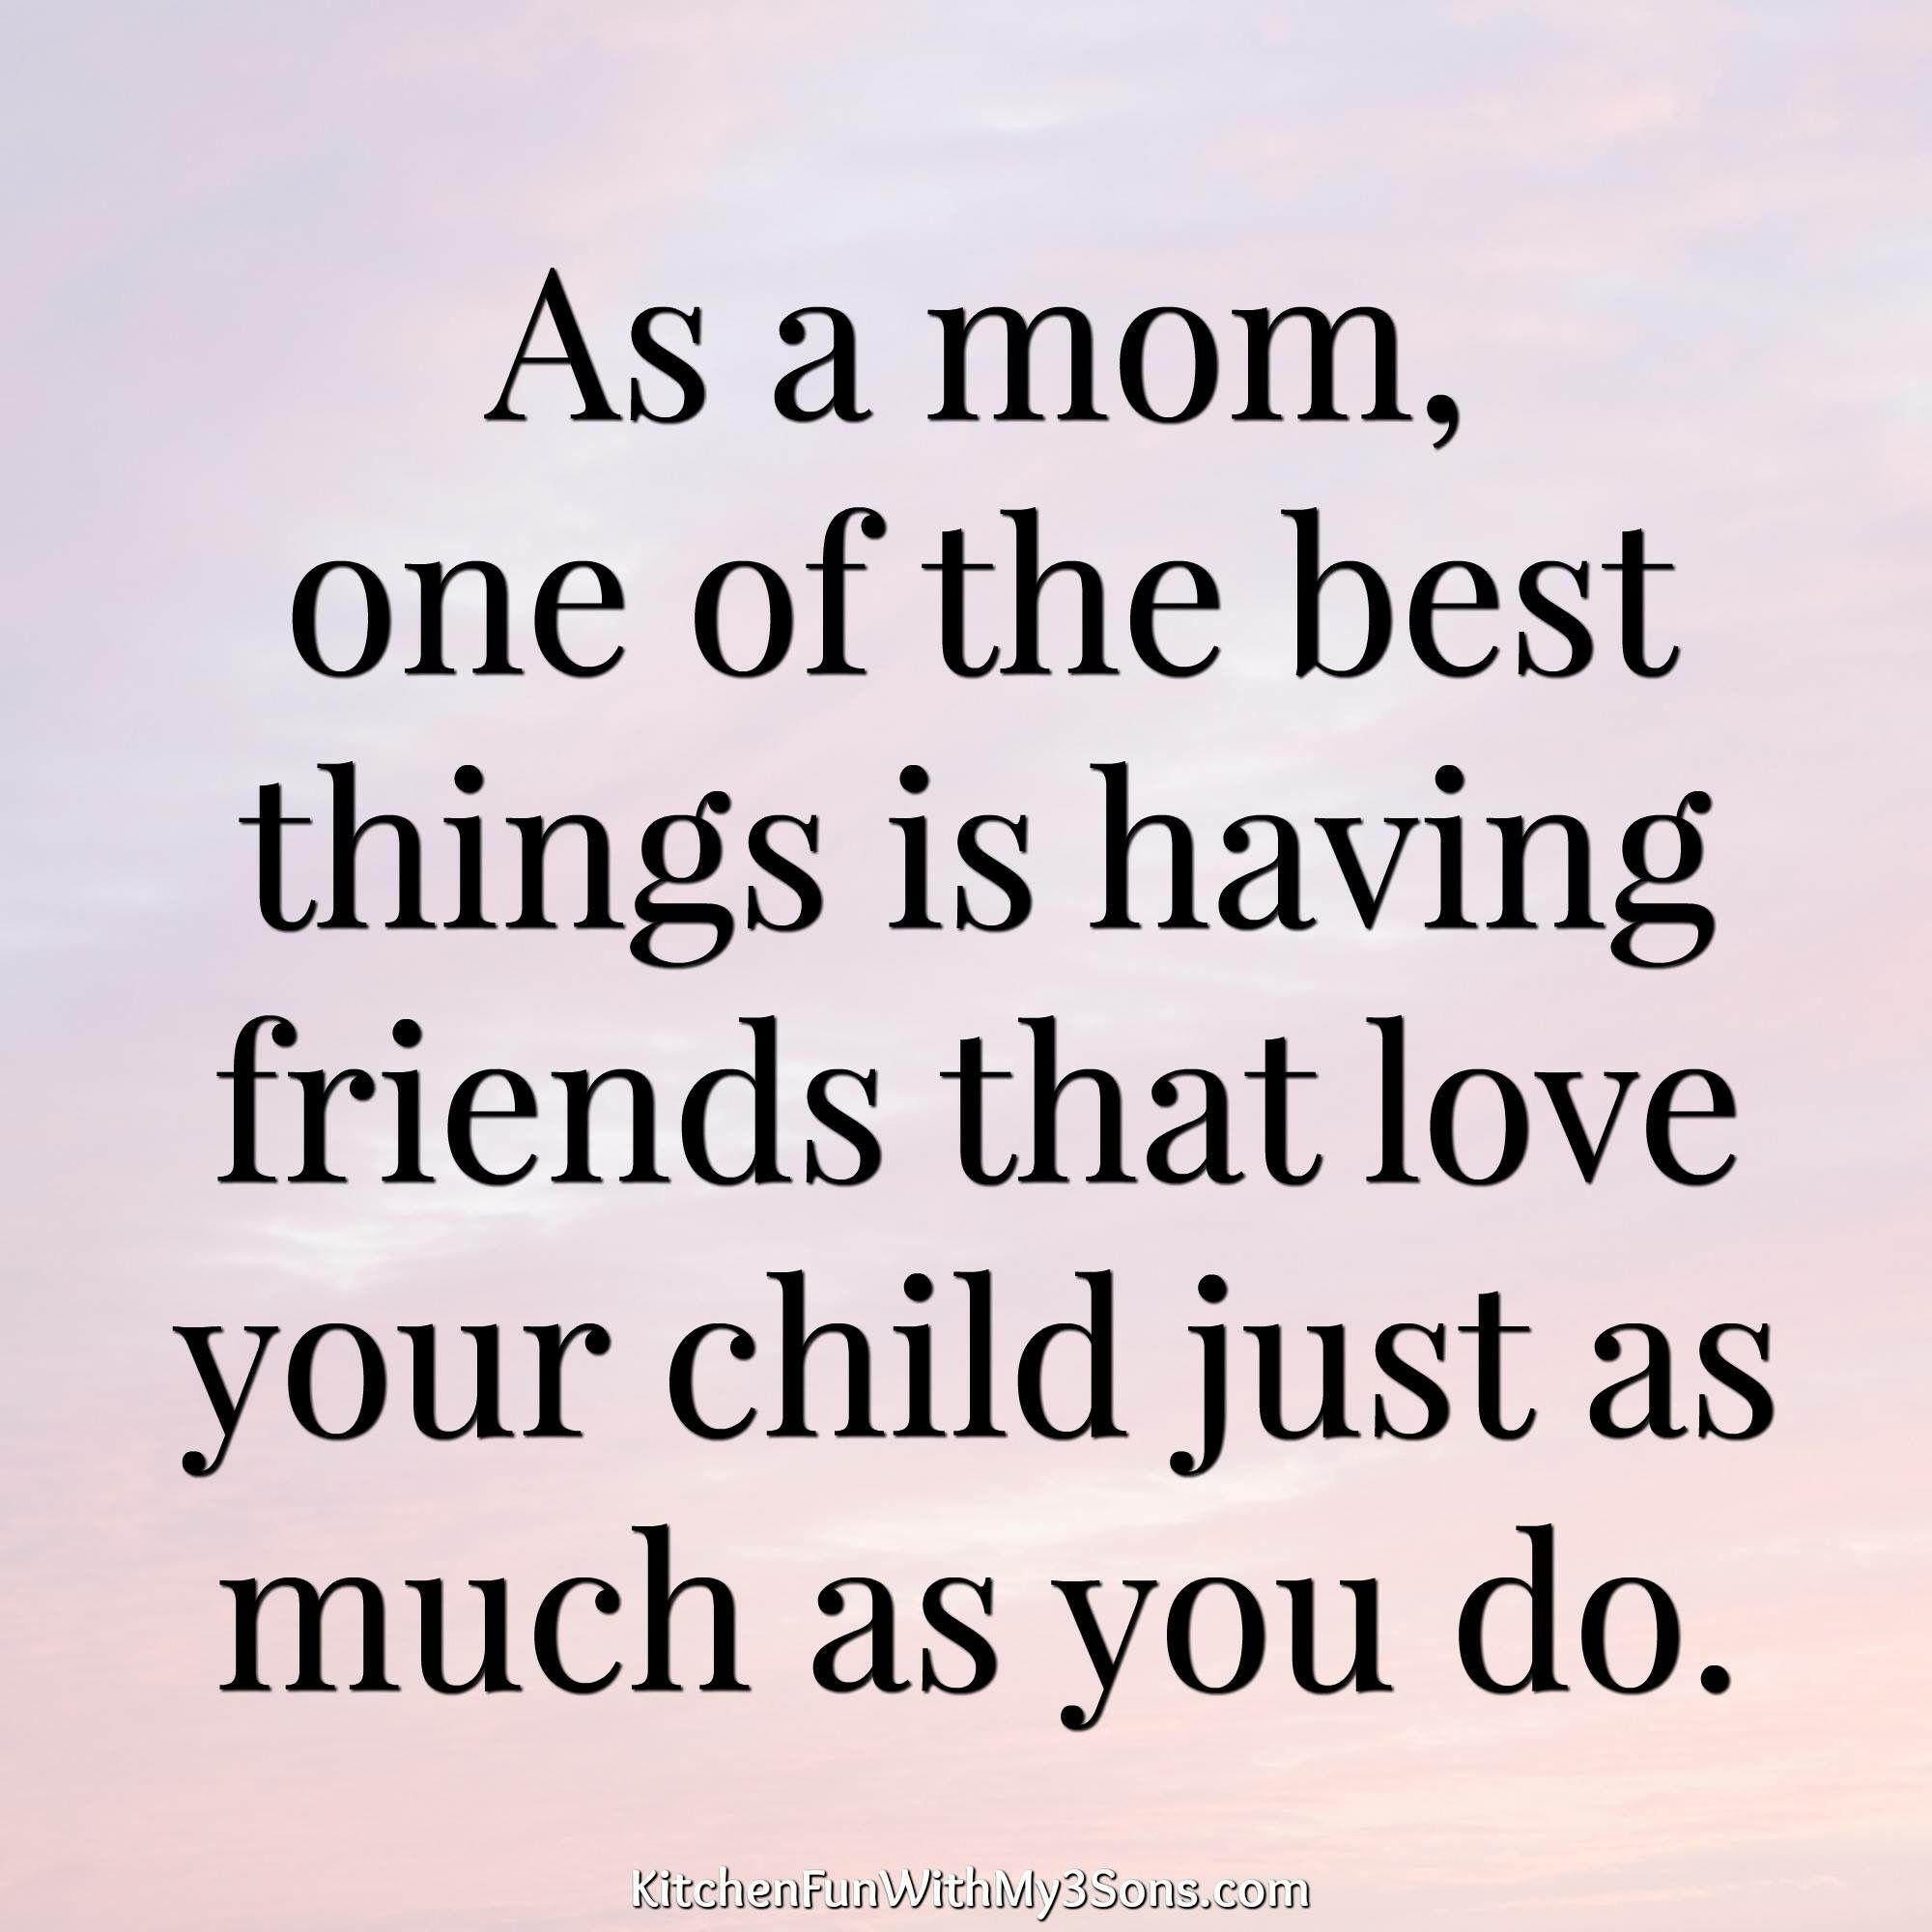 Pin By Luisa Guenther On Speak To Me Love My Kids Quotes My Children Quotes Friendship Quotes For Kids